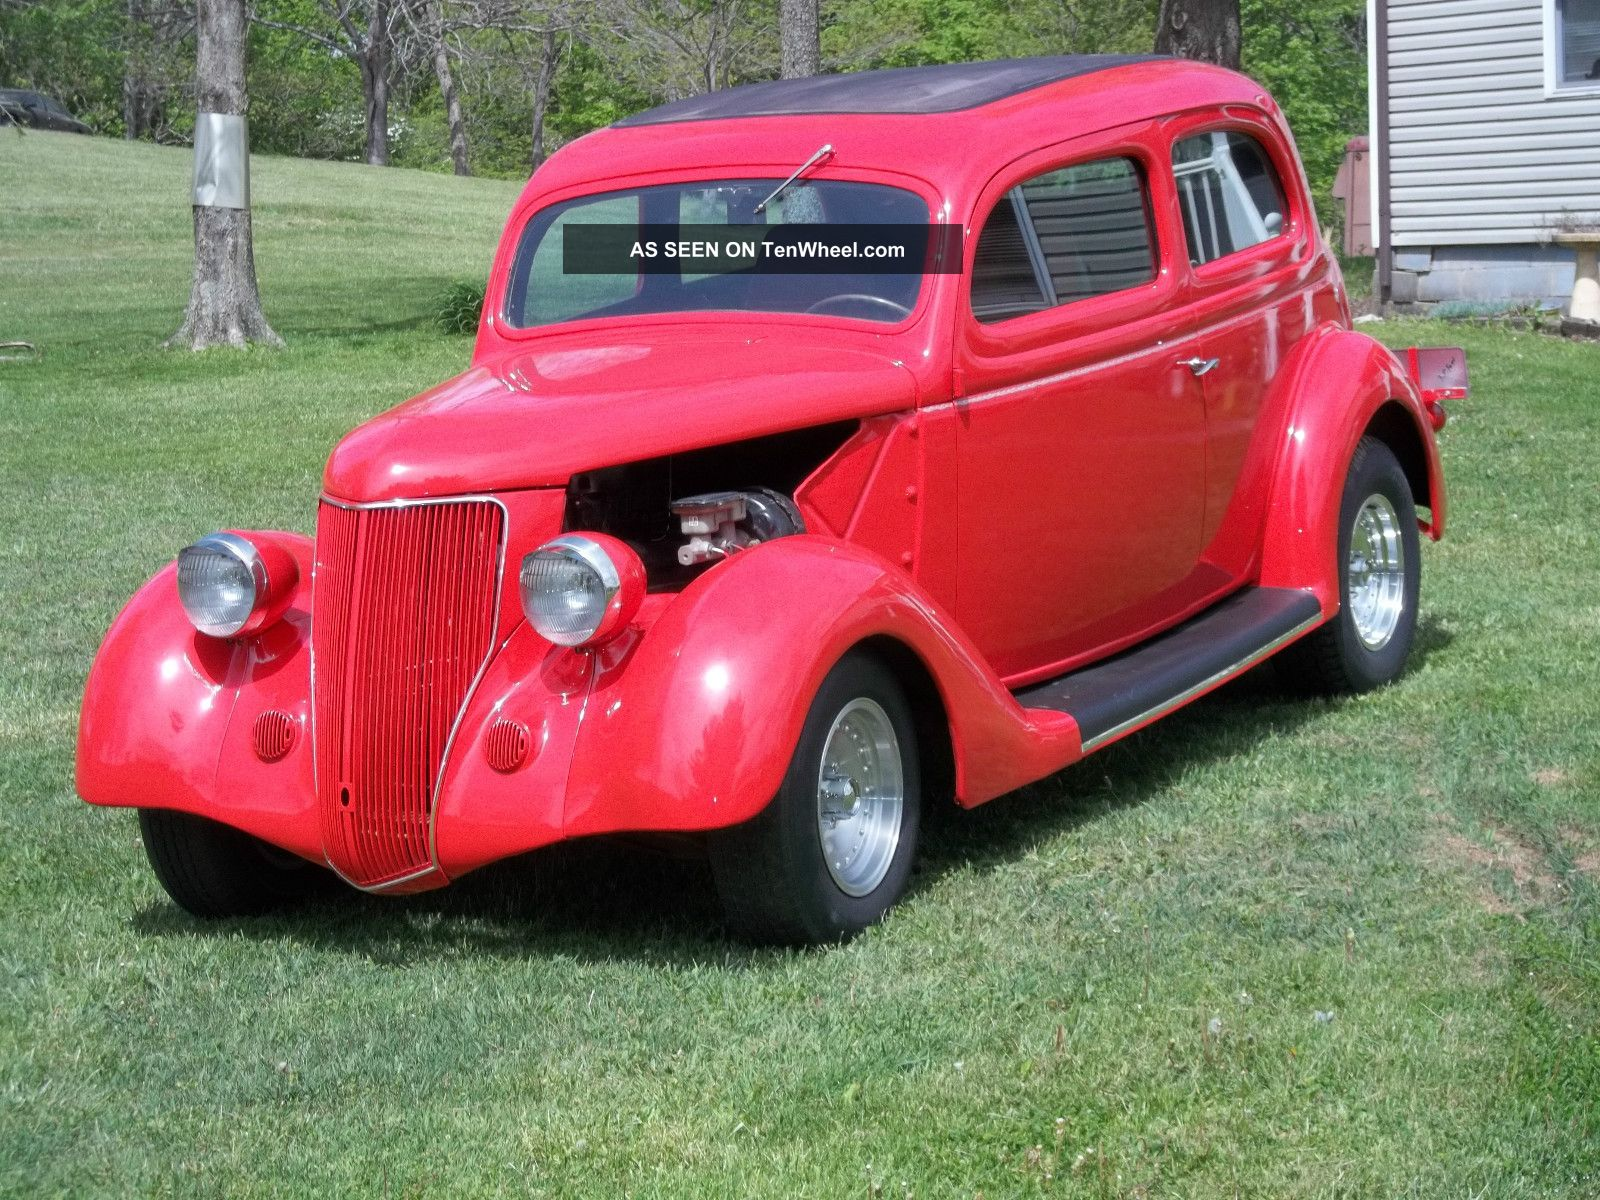 1936 pontiac 2 door sedan pictures to pin on pinterest for 1936 dodge 4 door sedan